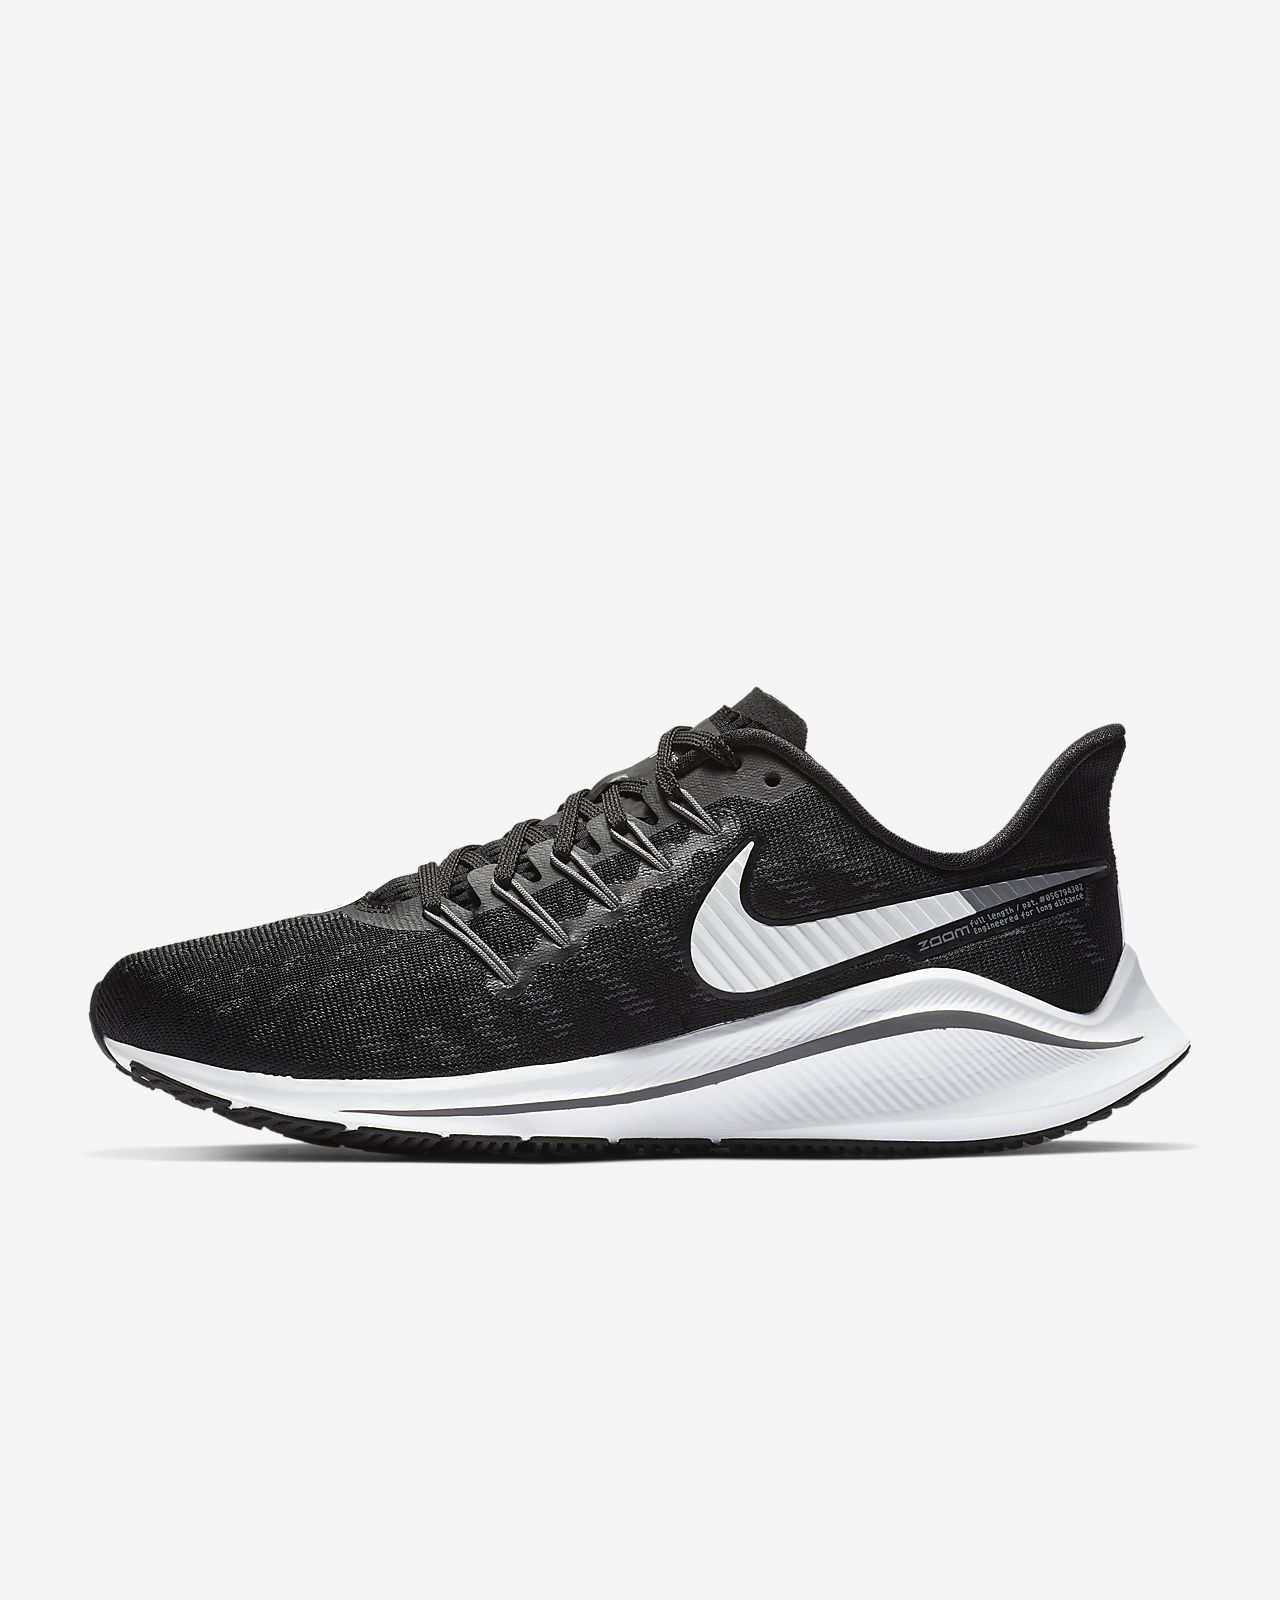 Nike Air Zoom Vomero 14 Women s Running Shoe. Nike.com 0d2d4a7c2